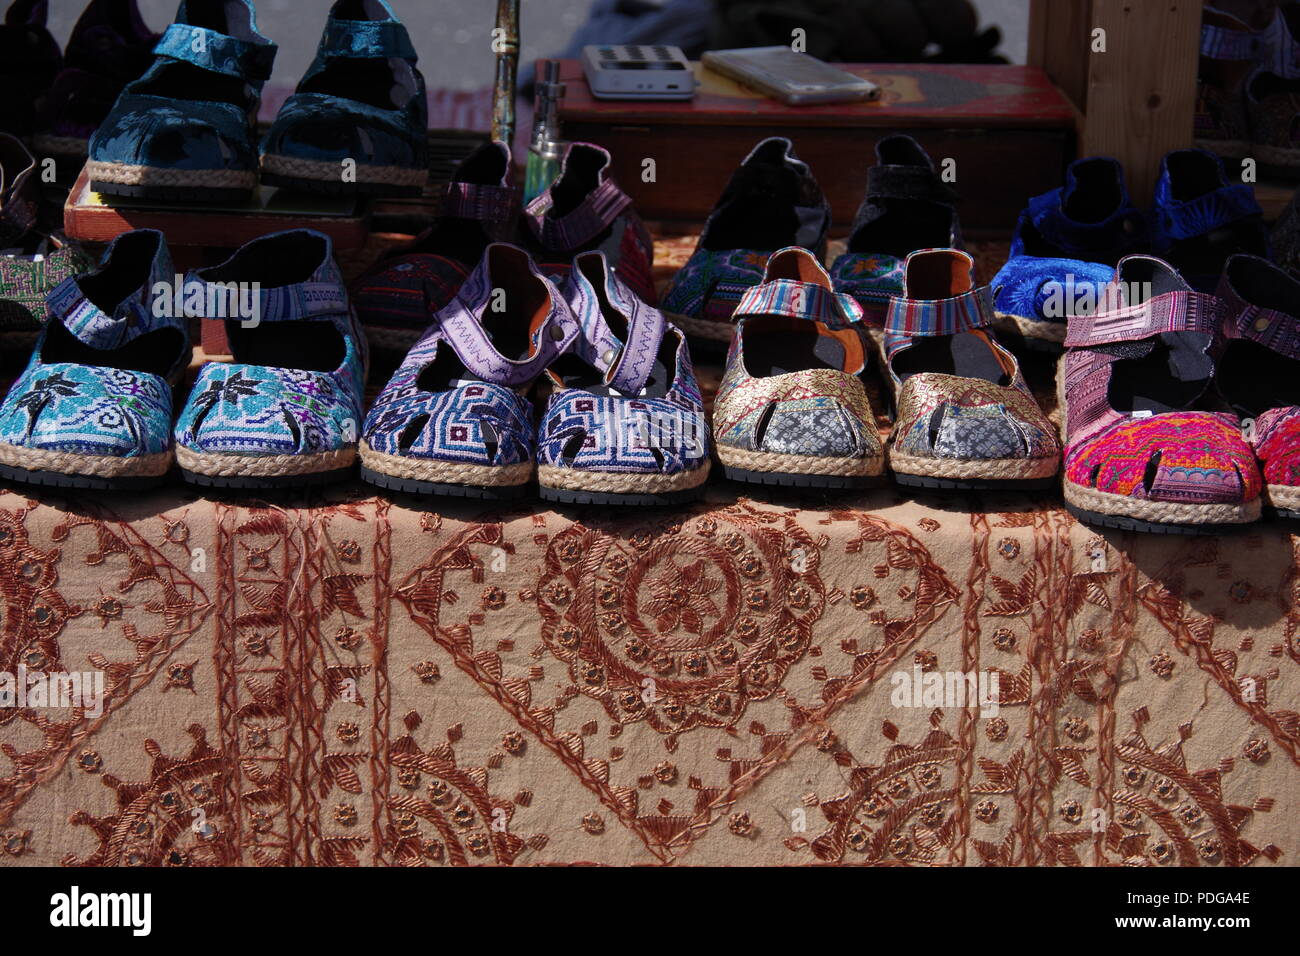 Colourful Fabric Women's Shoes at a Market Stand. Sidmouth Folk Festival, East Devon, UK. August, 2018. - Stock Image